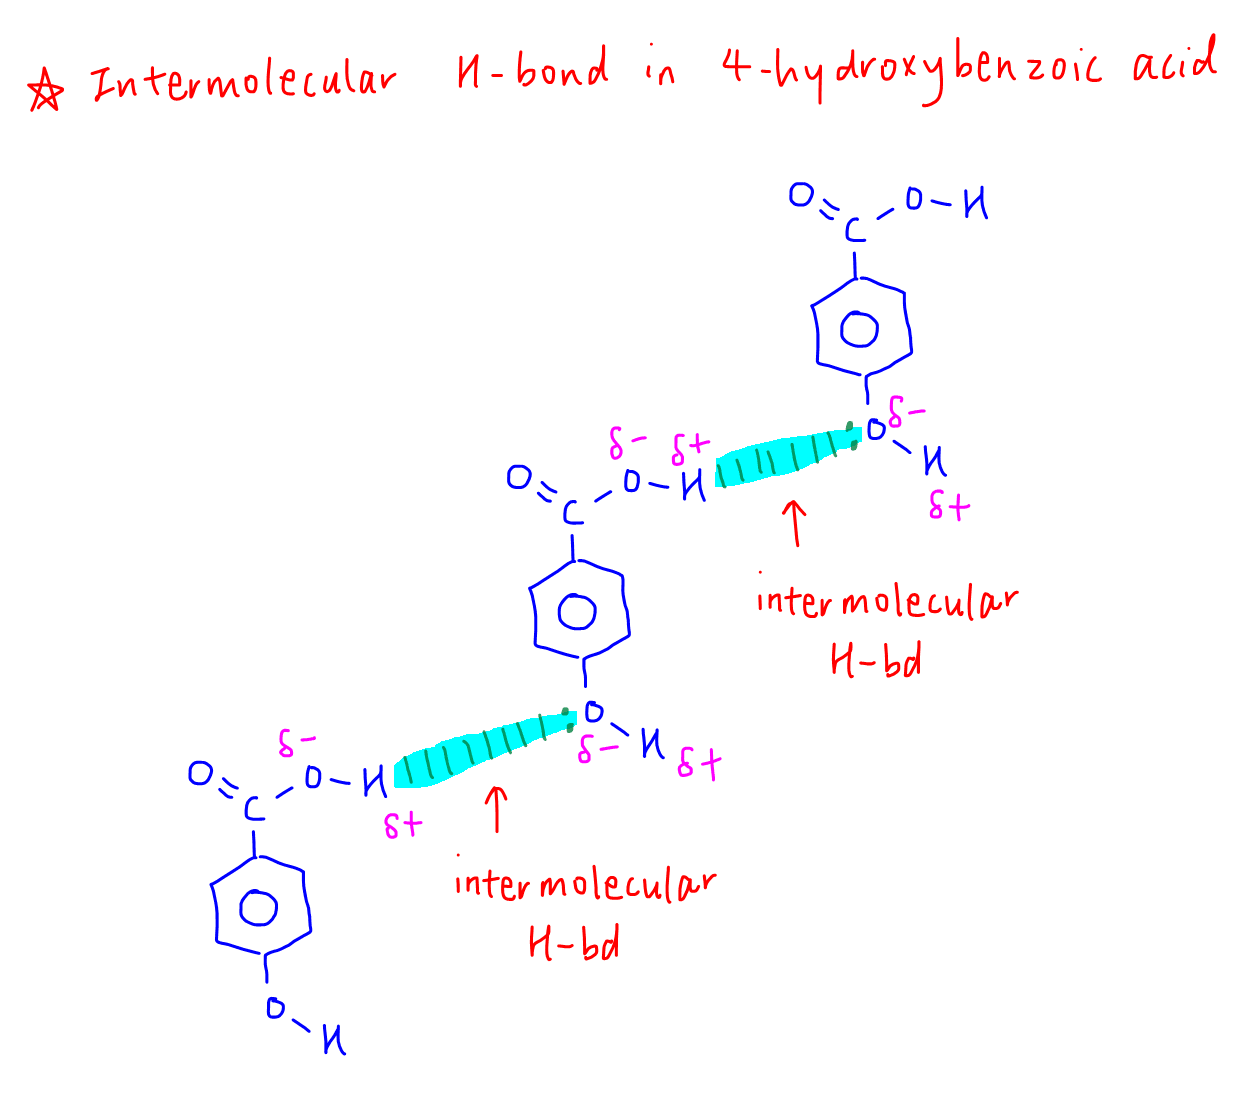 Intramolecular vs Intermolecular Hydrogen Bond